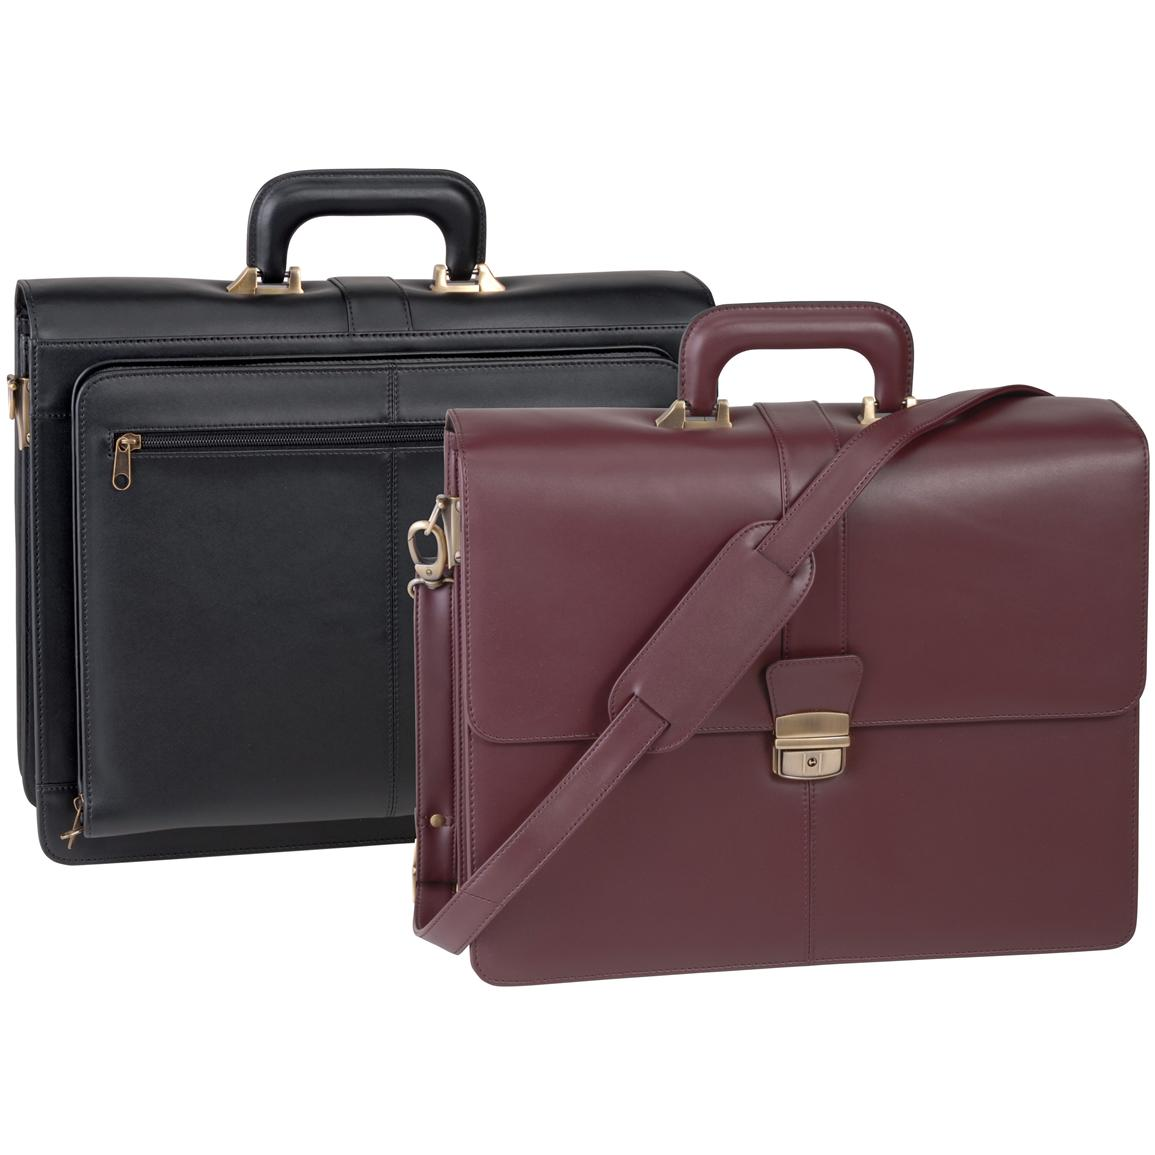 Royce Leather Legal Briefcase